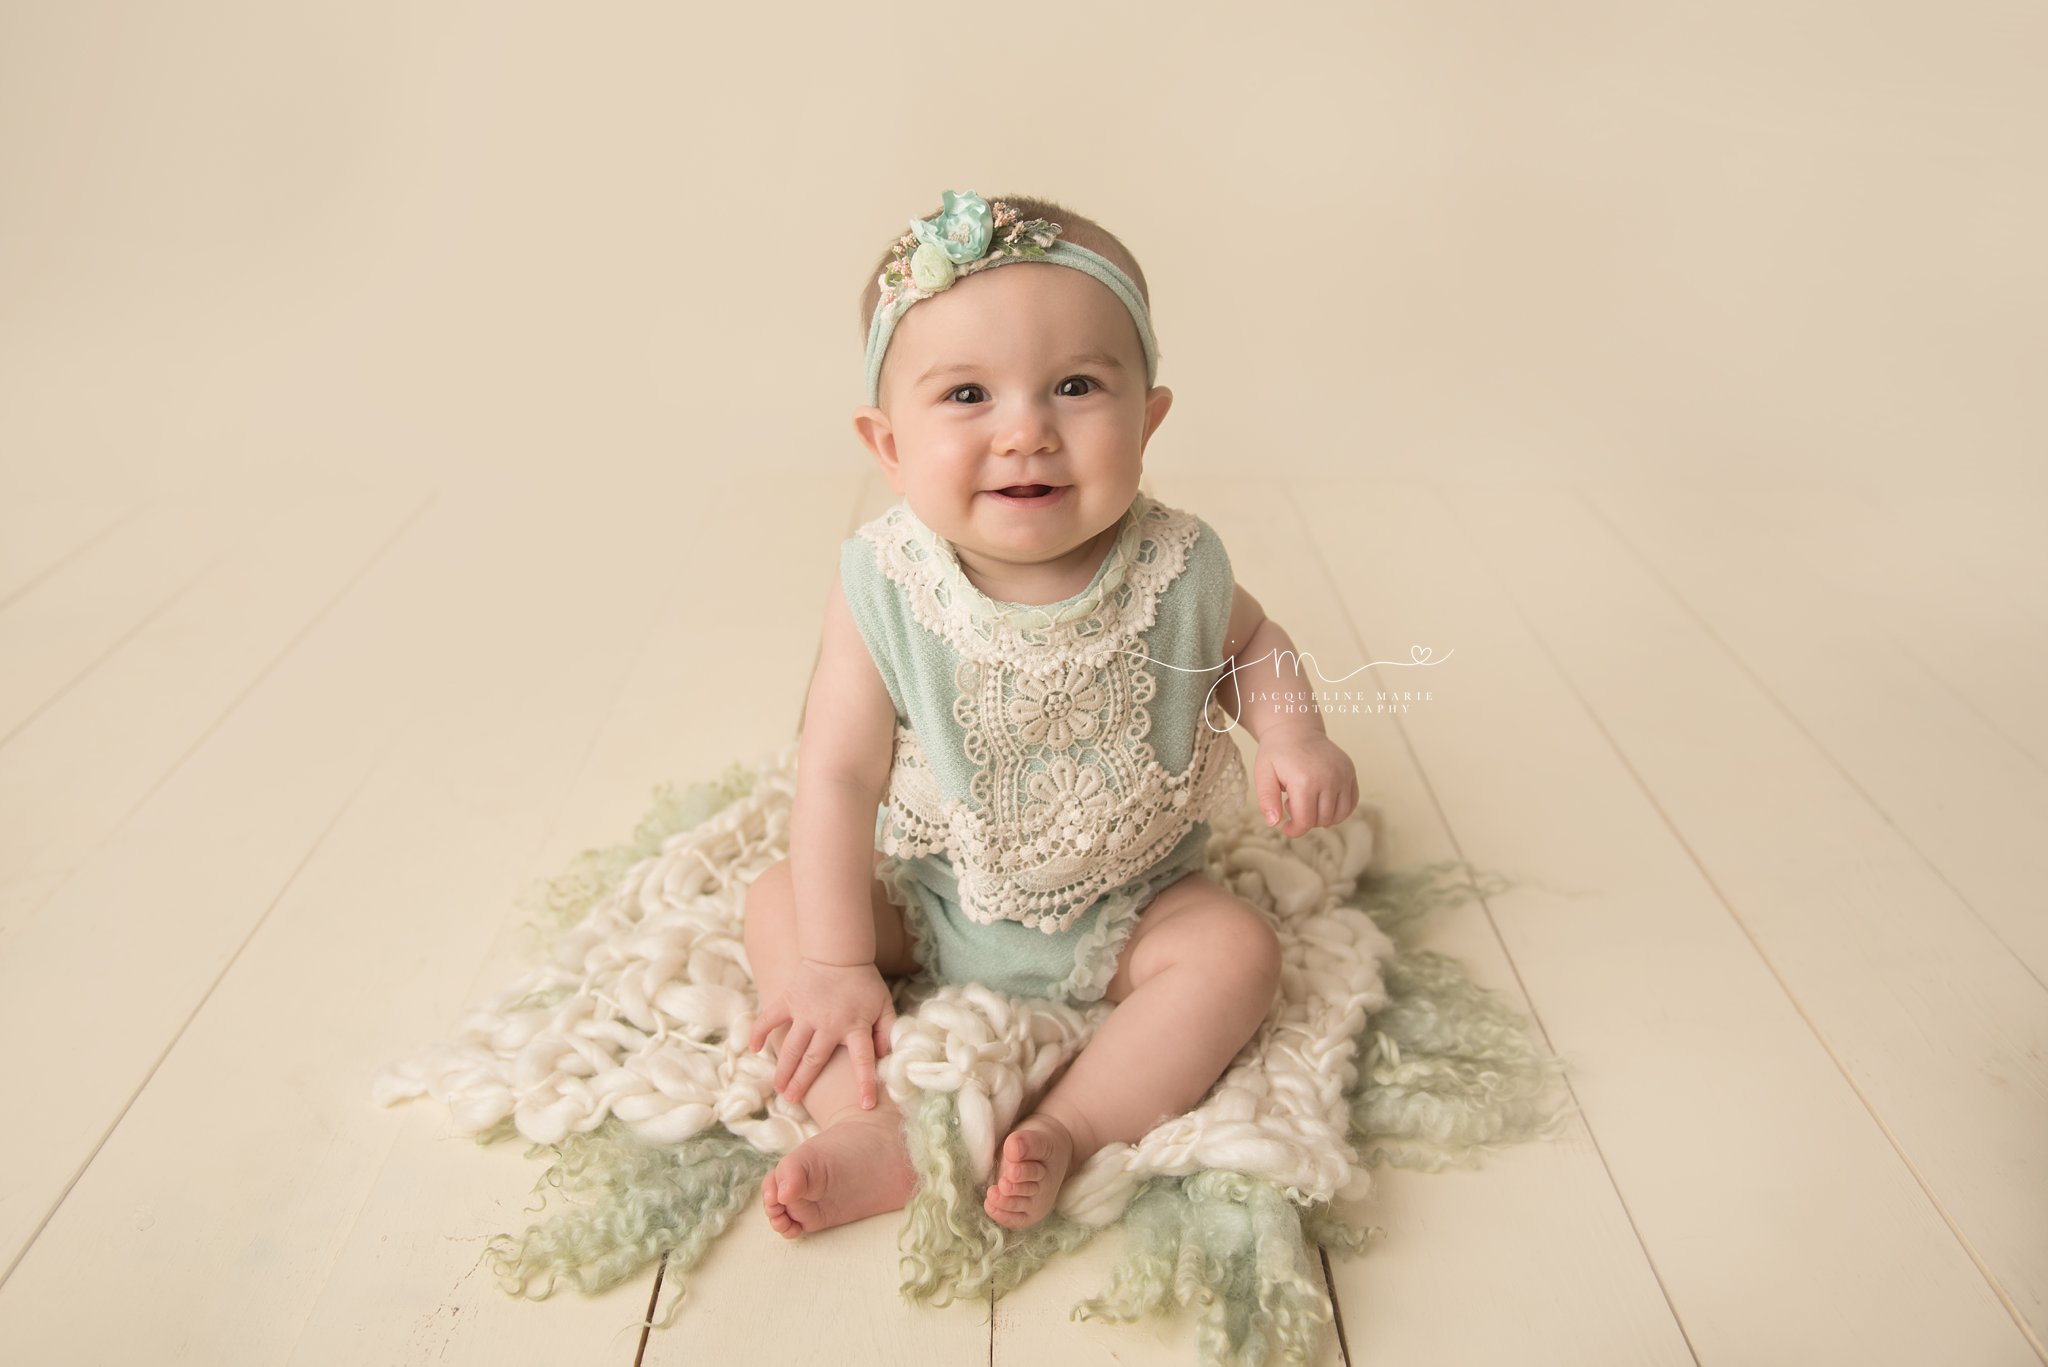 columbus ohio baby photographer poses baby girl in mint green and cream lace romper